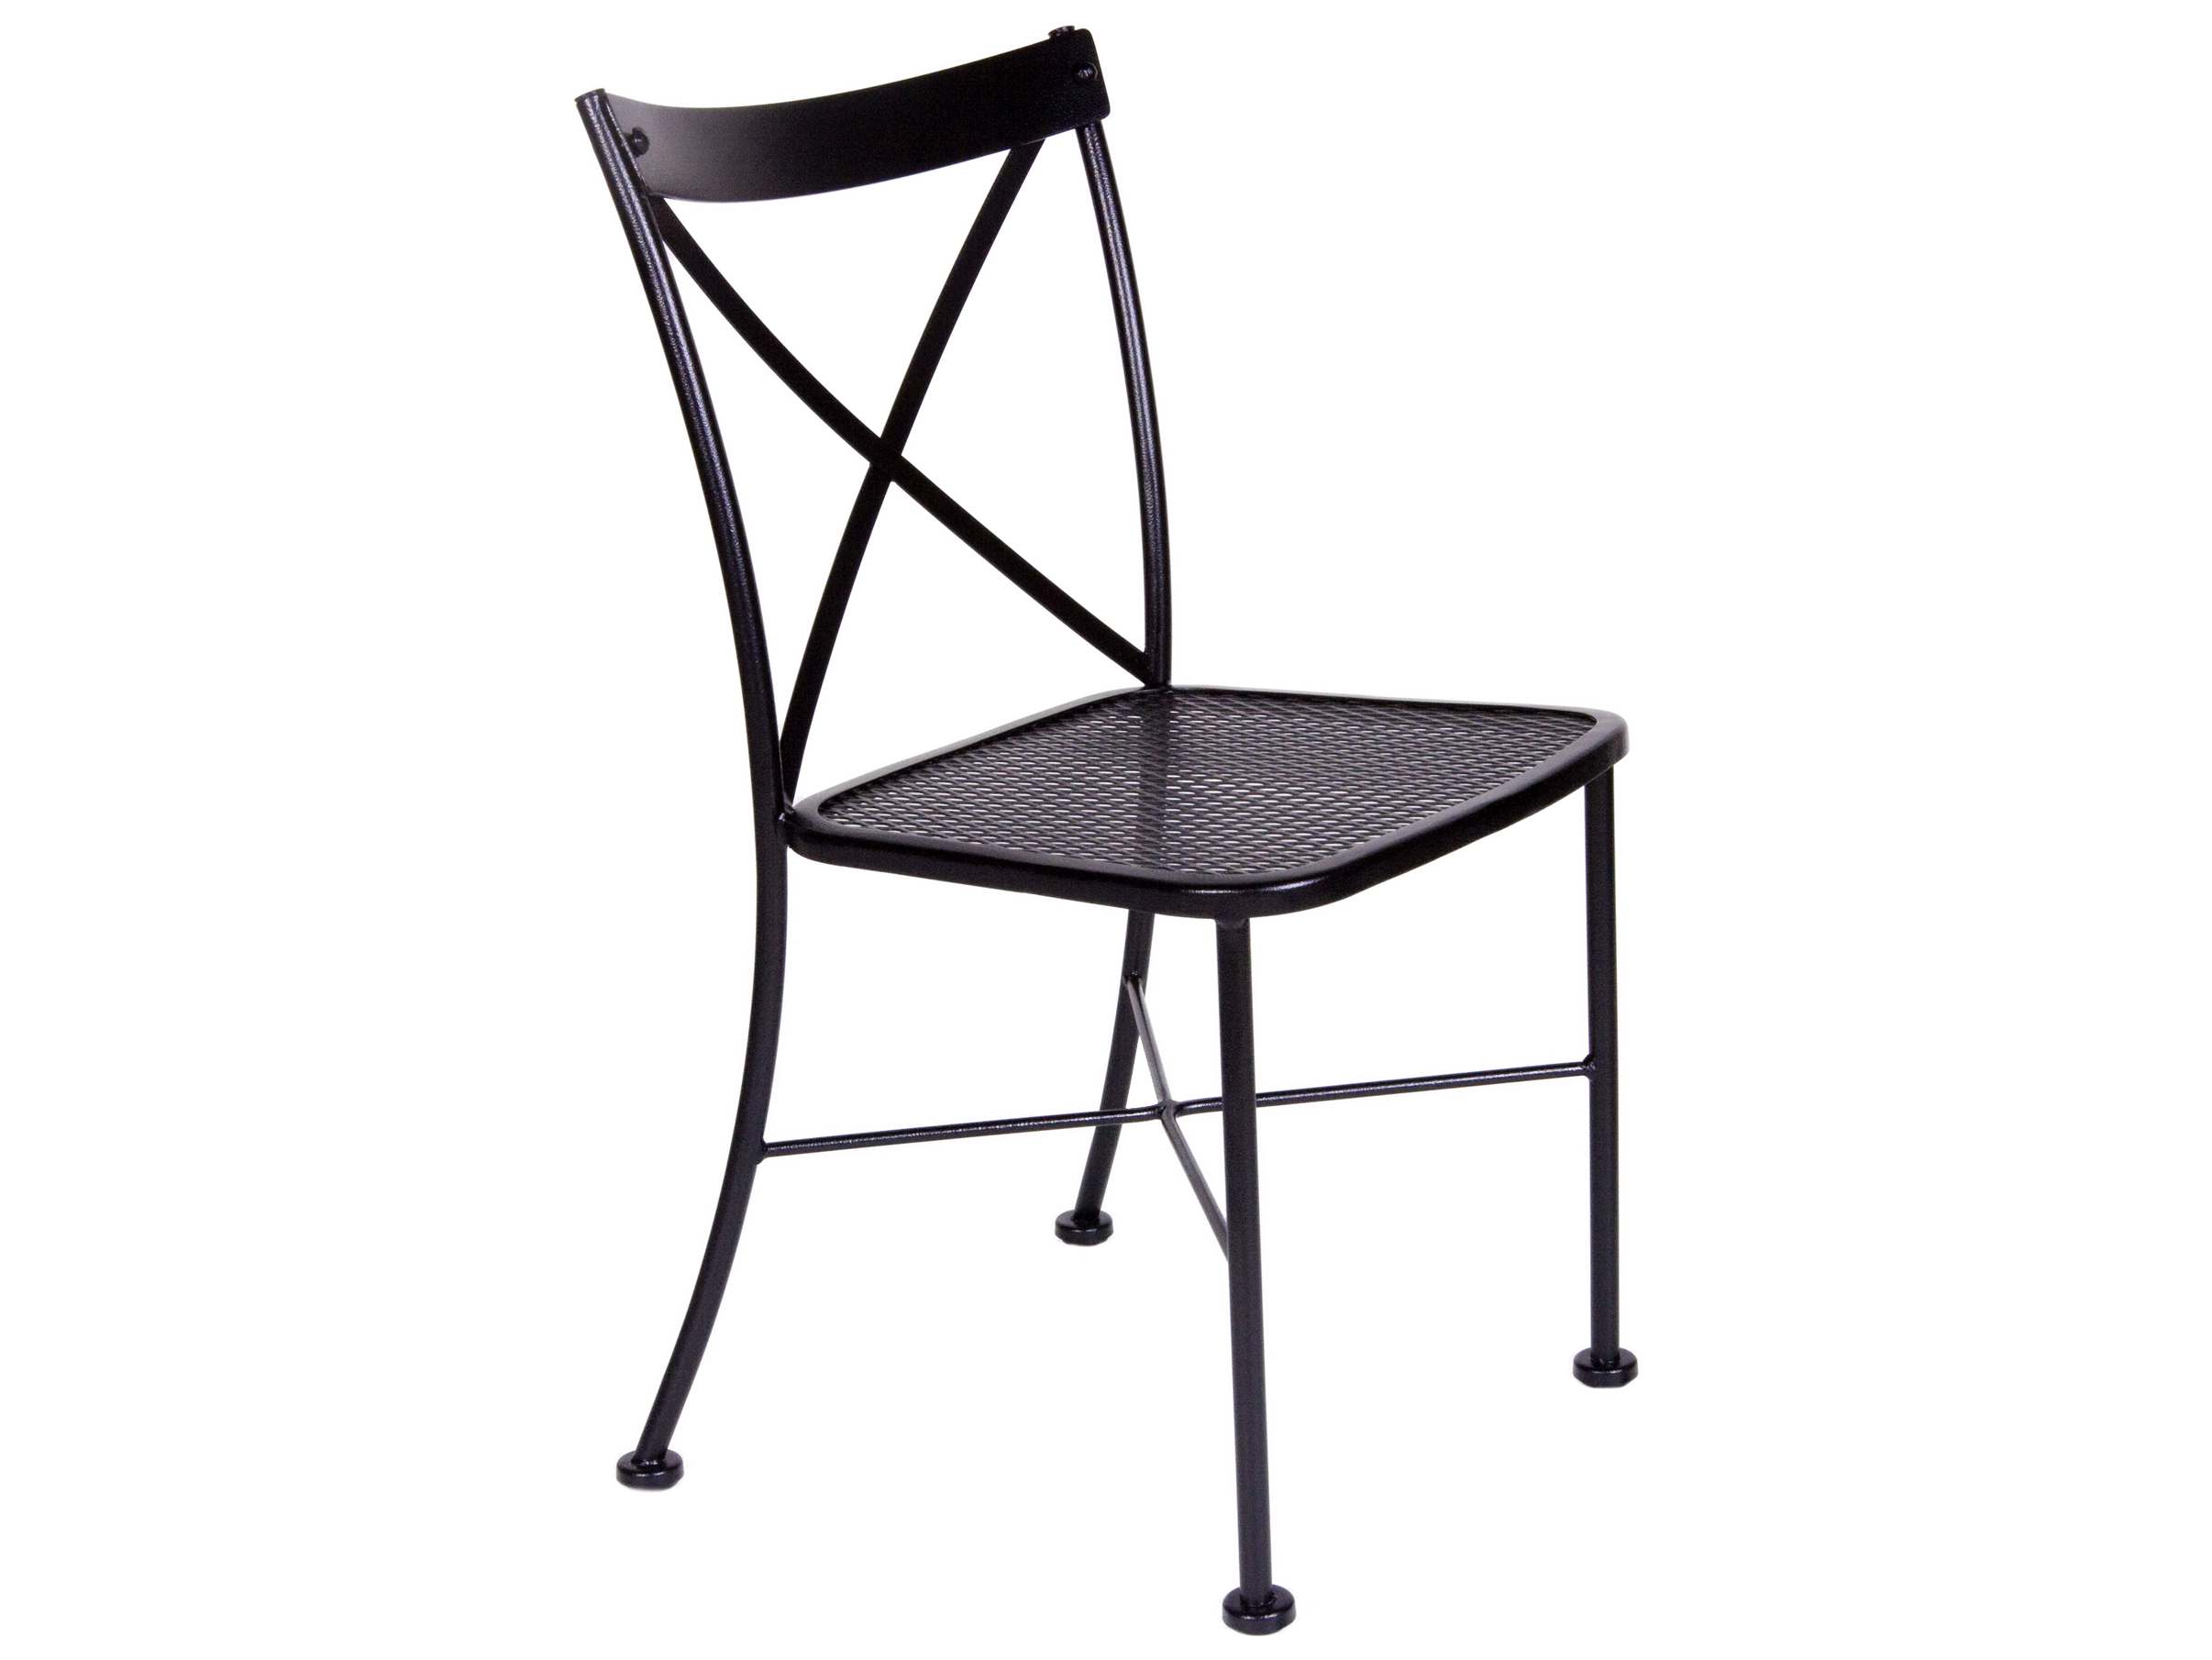 Ow Lee Villa Wrought Iron Metal Side Dining Chair 507 S